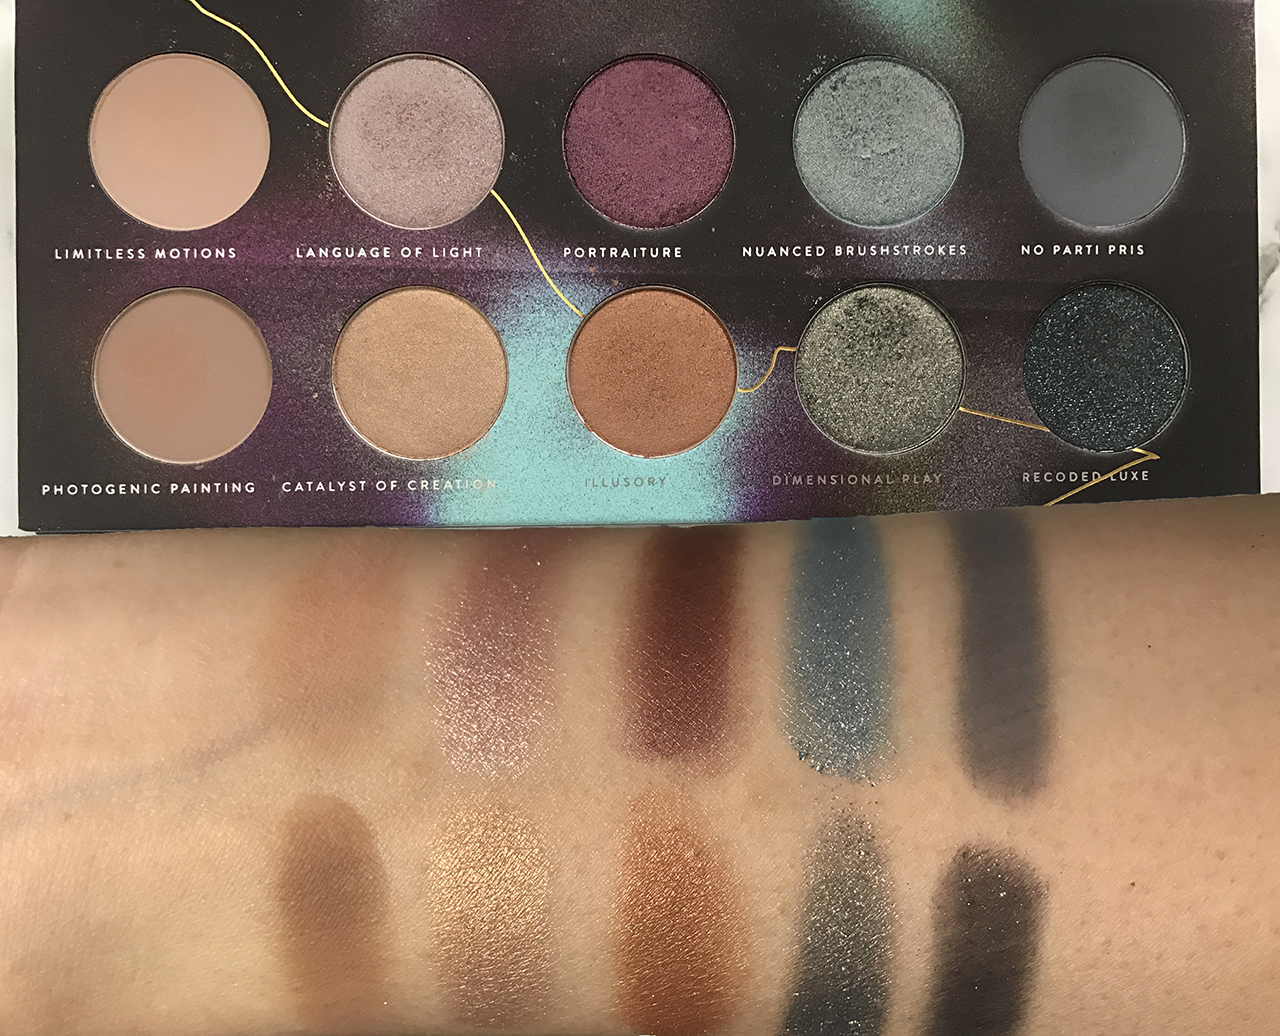 Zoeva Eclectic Eyes Palette swatches